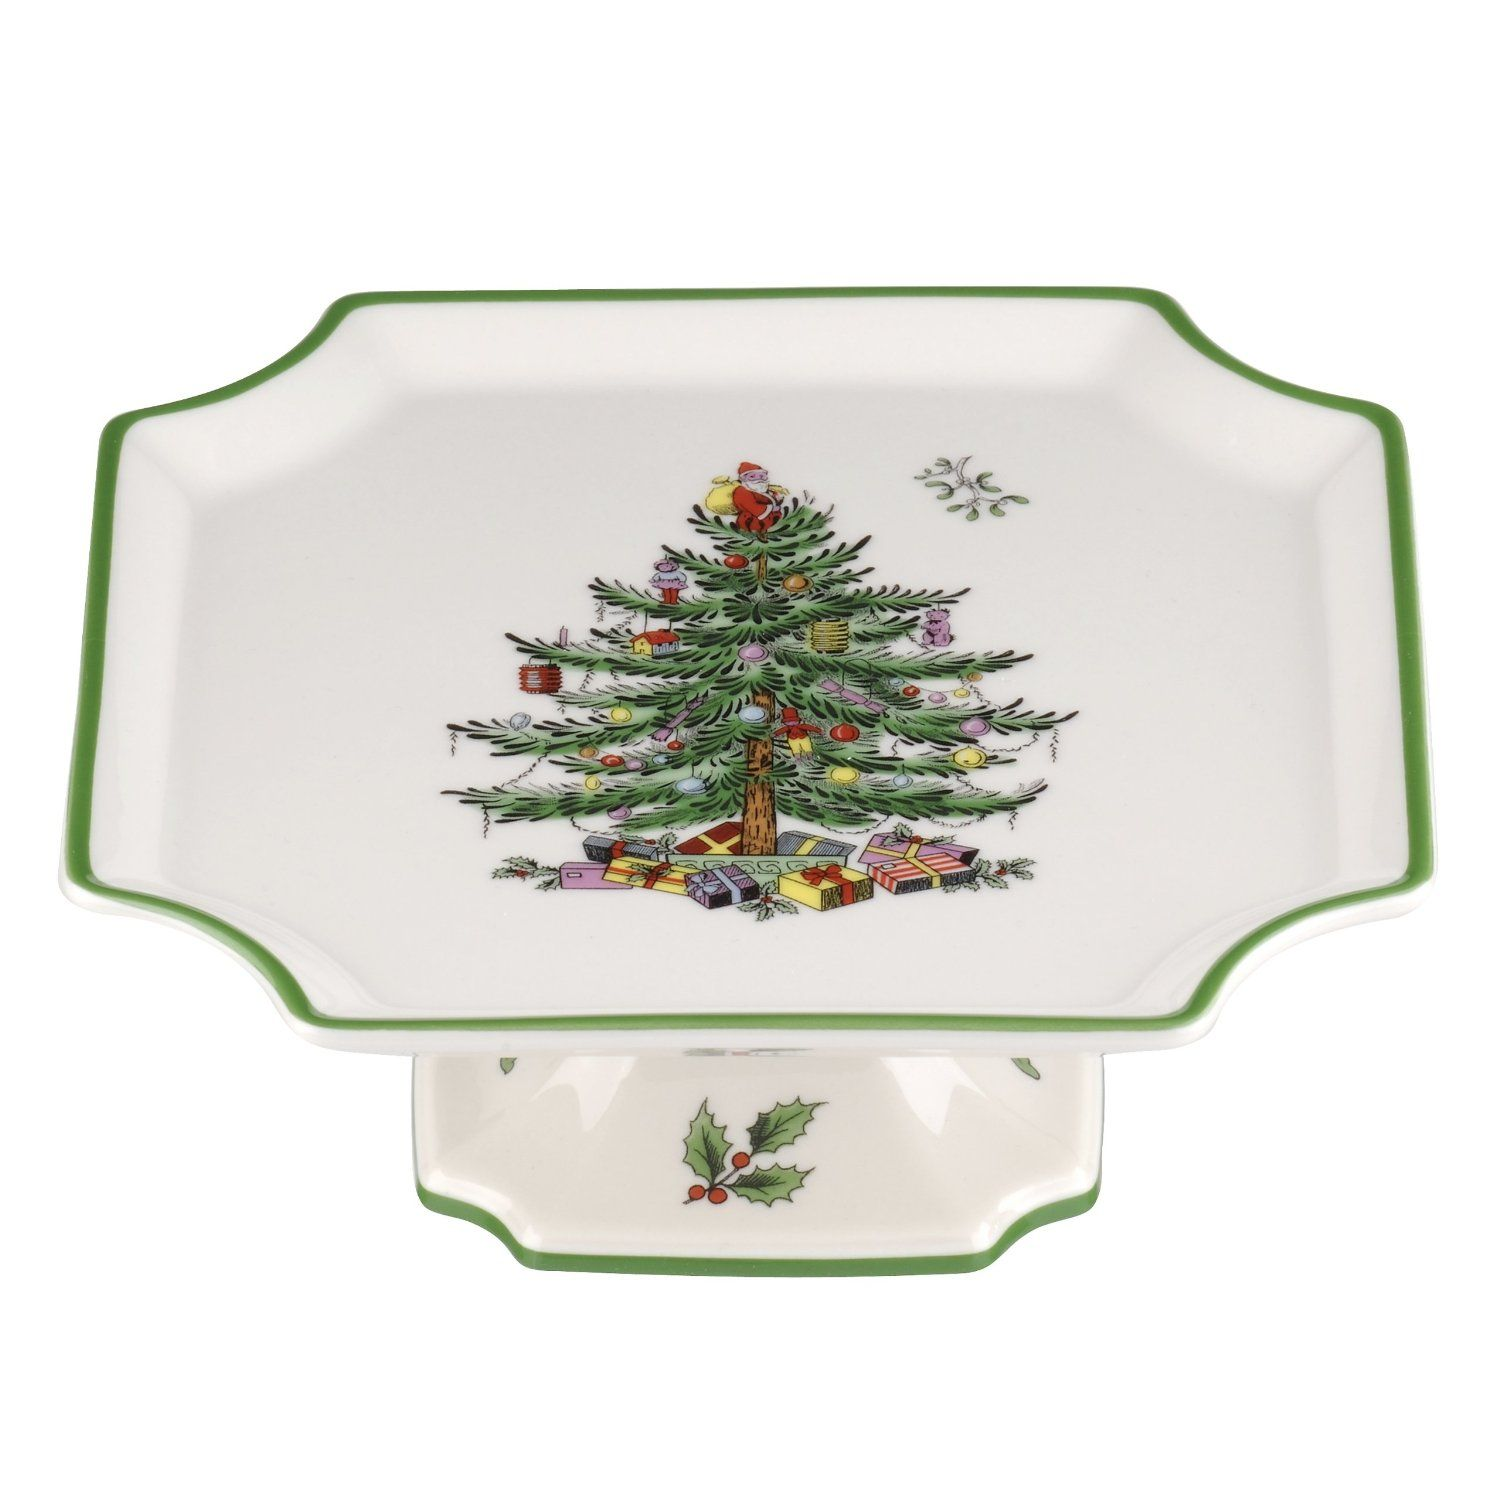 Spode Christmas Tree Footed Square Cake Plate #Spode #ChristmasTree ...